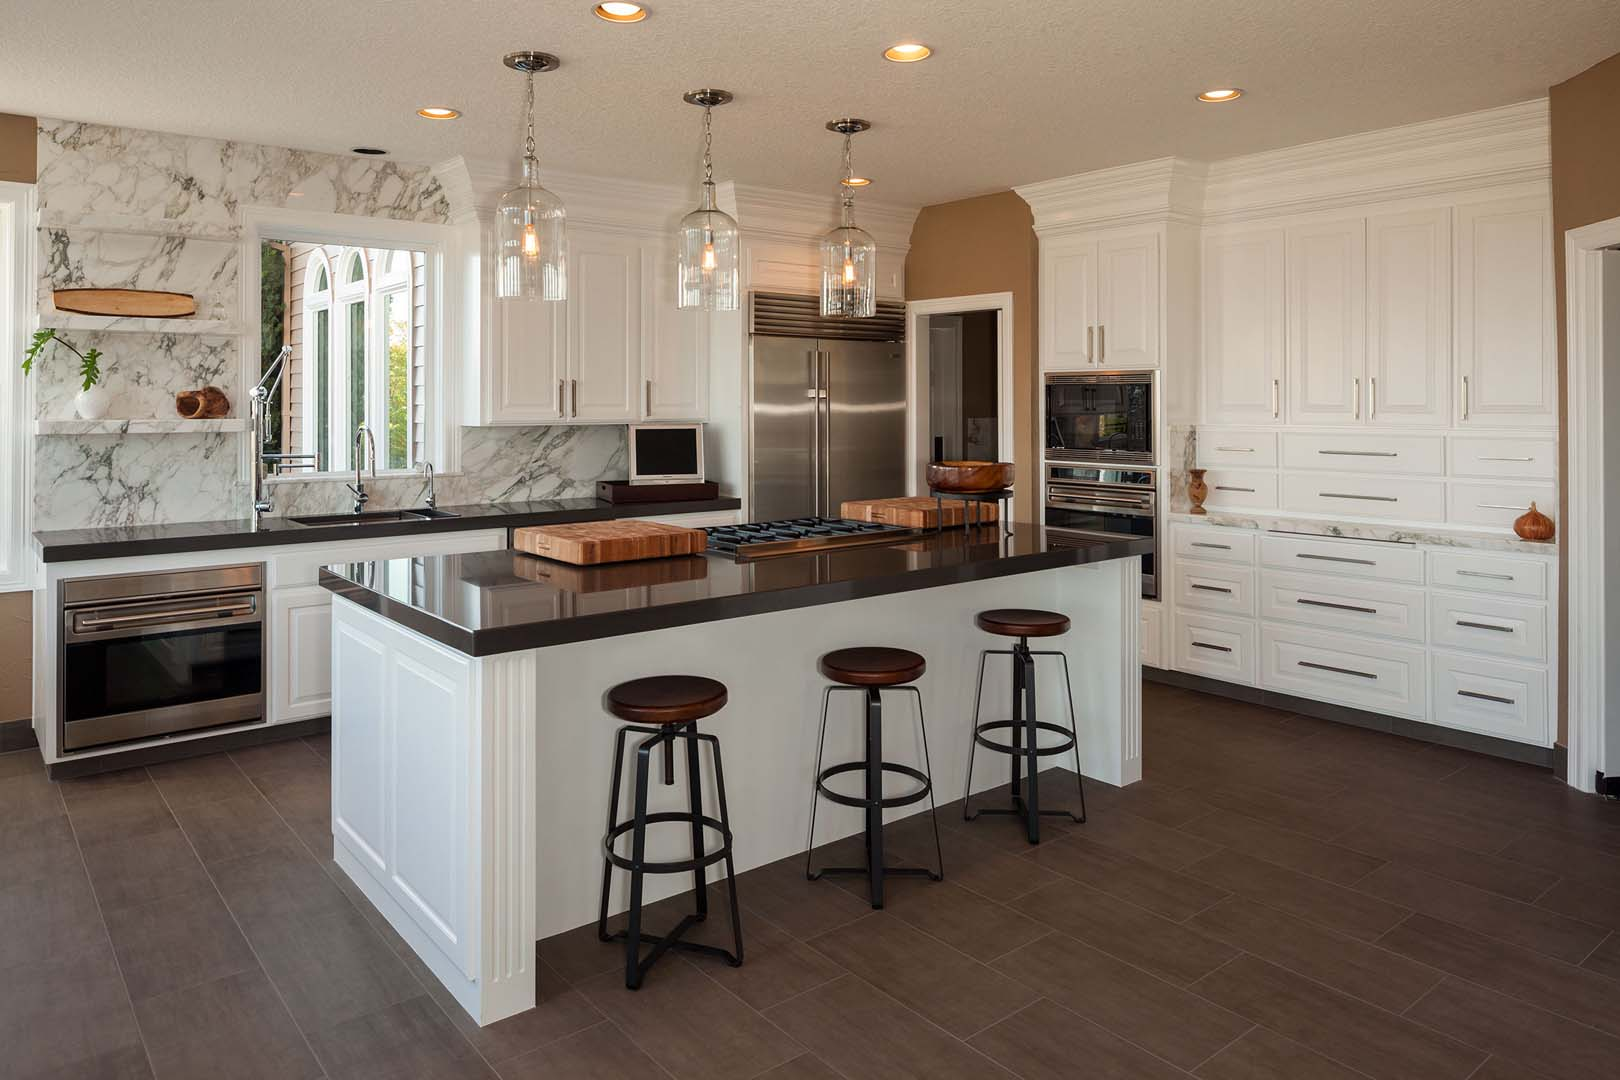 Kitchen West Linn Or Natural Stone Designs